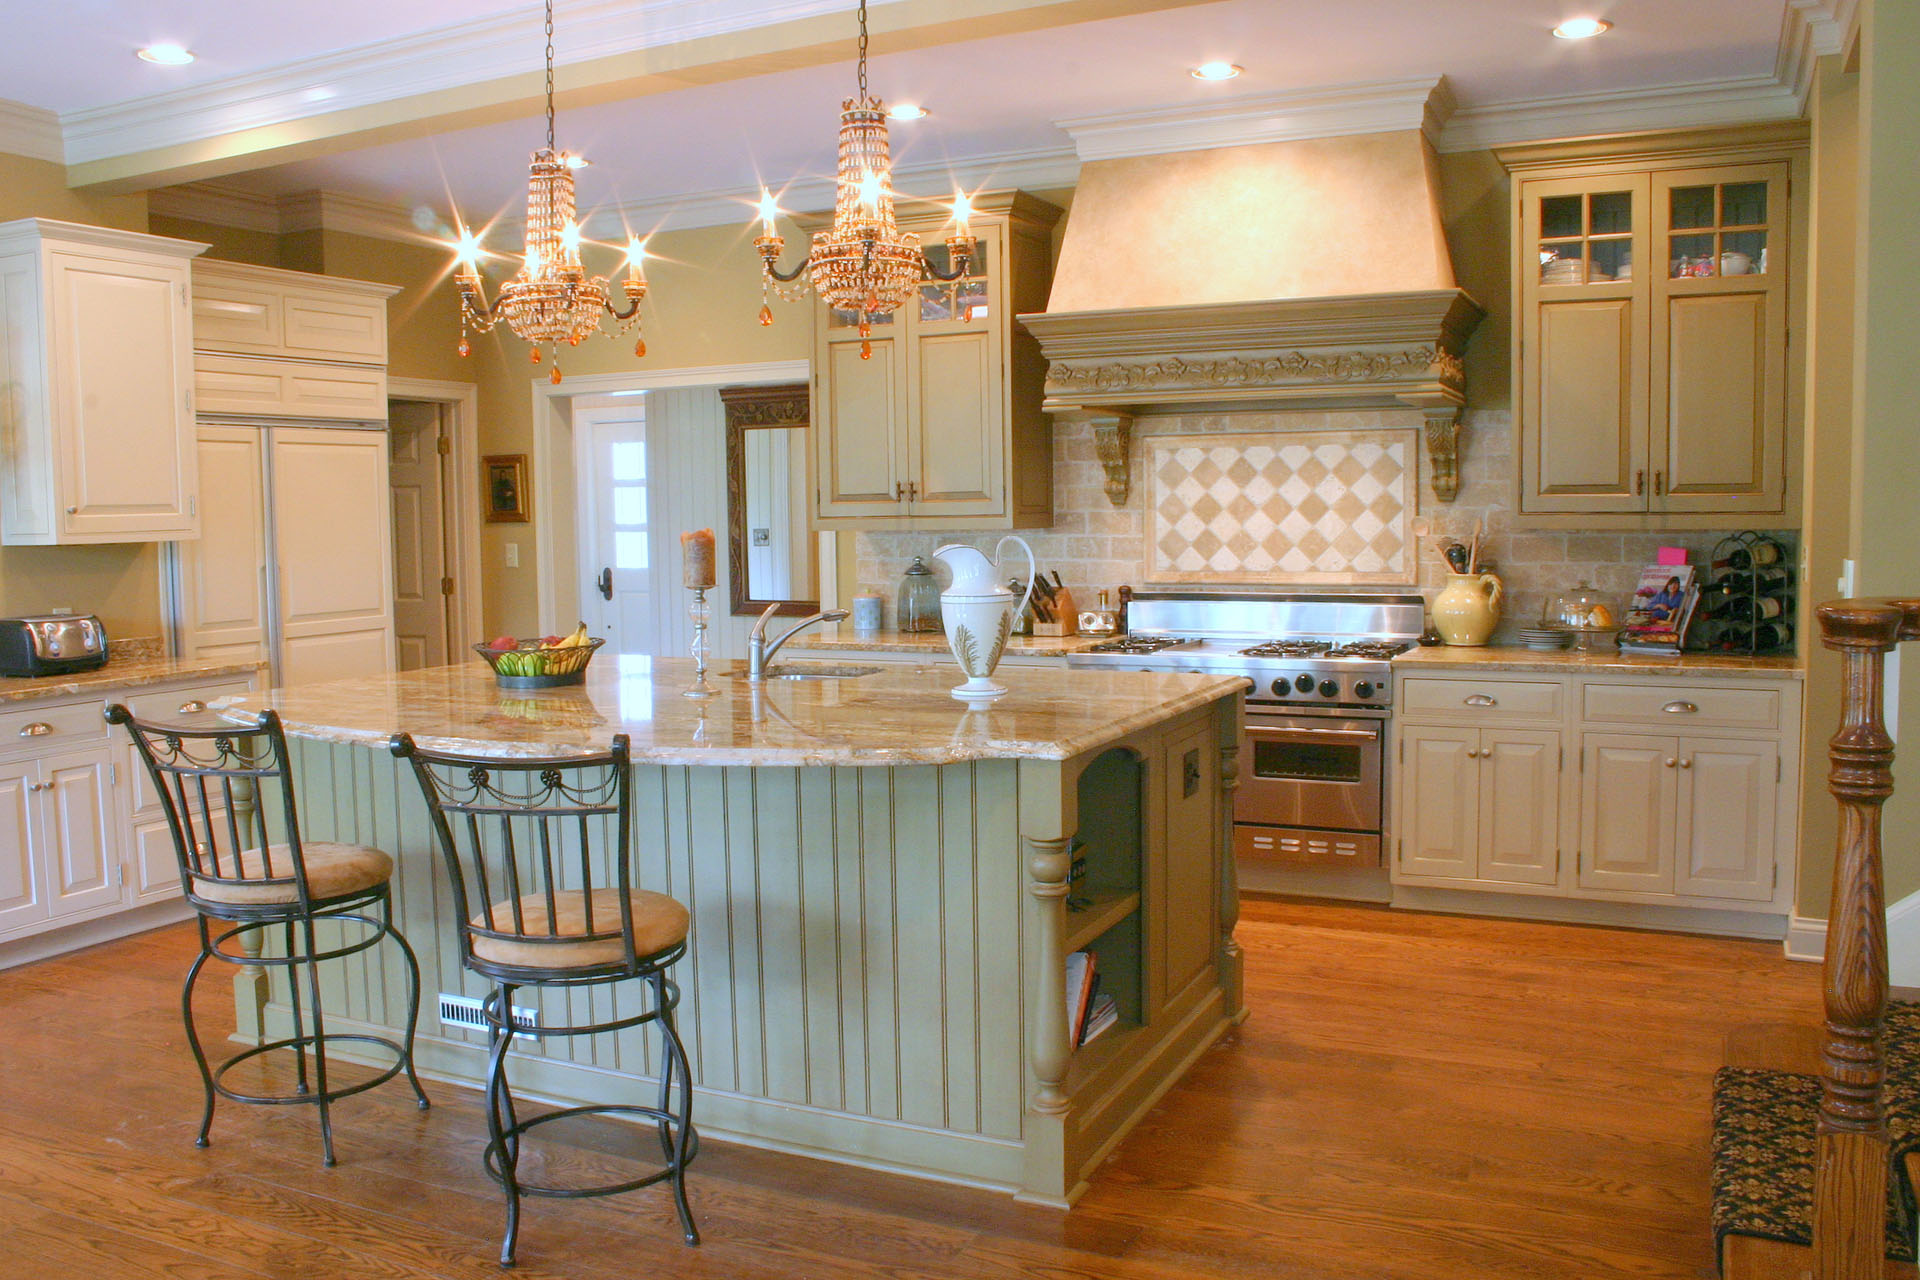 Clay Center Distressed Green Island and Range Hood